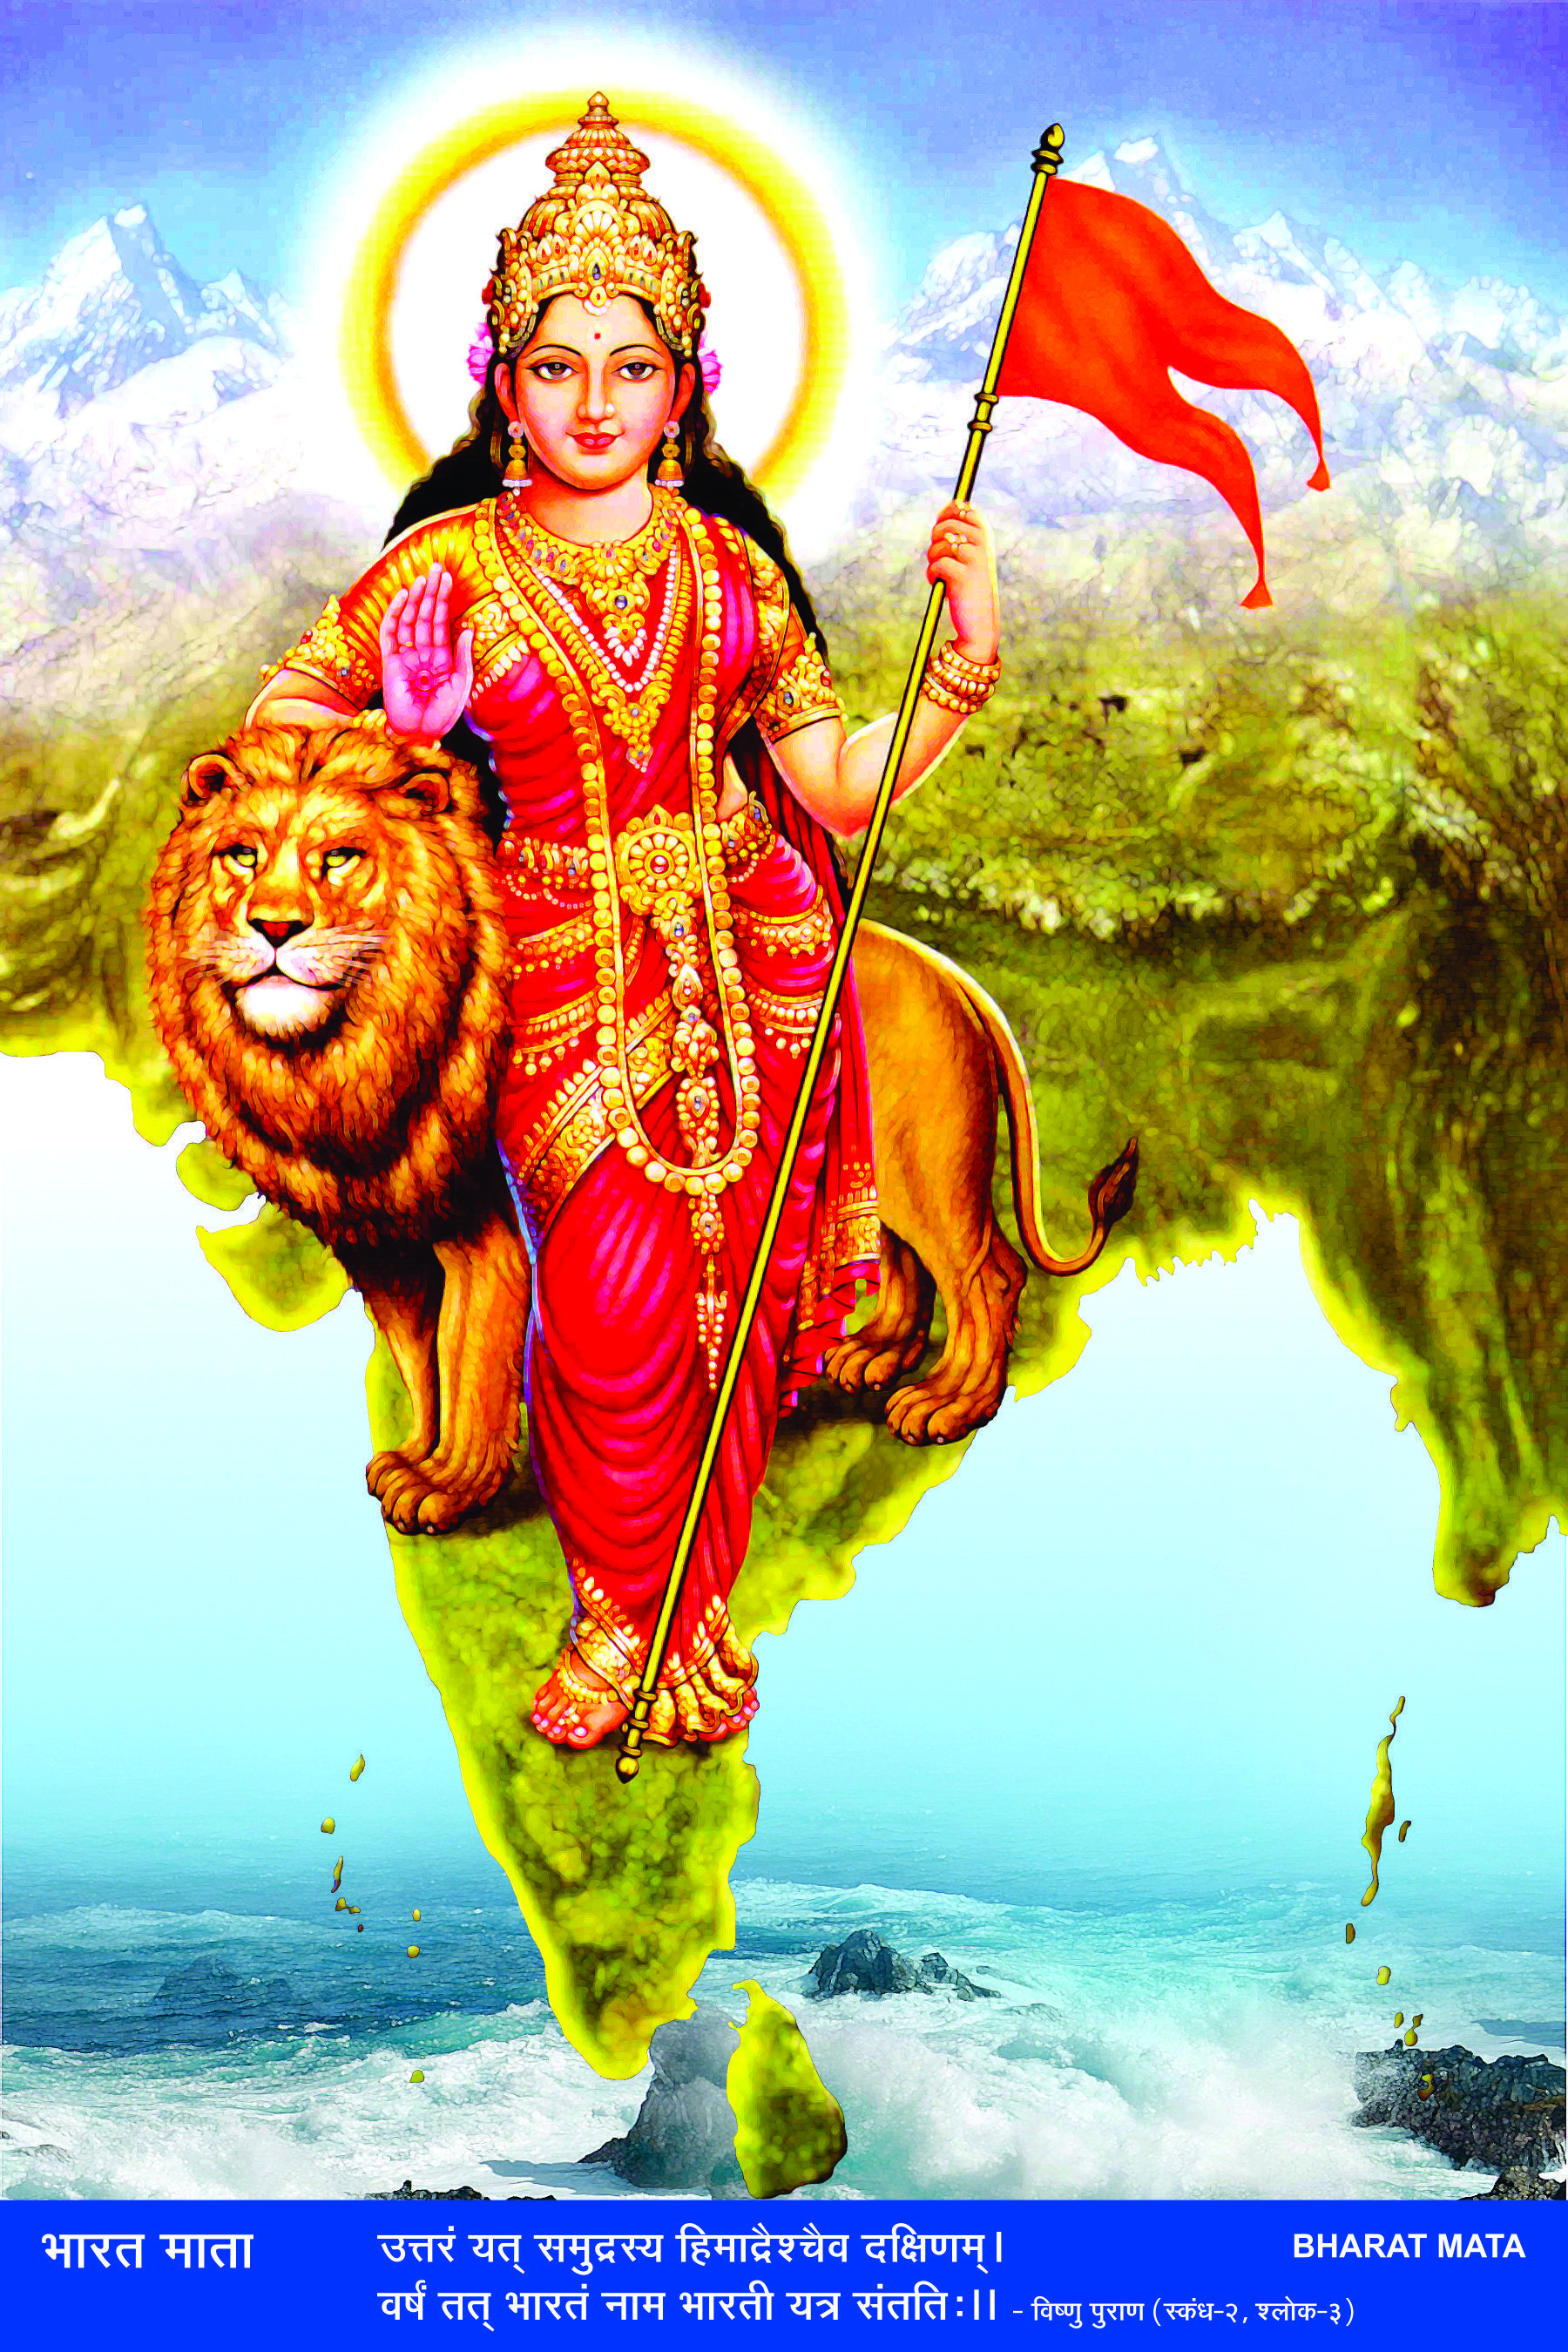 bharat mata with rss flag - photo #6